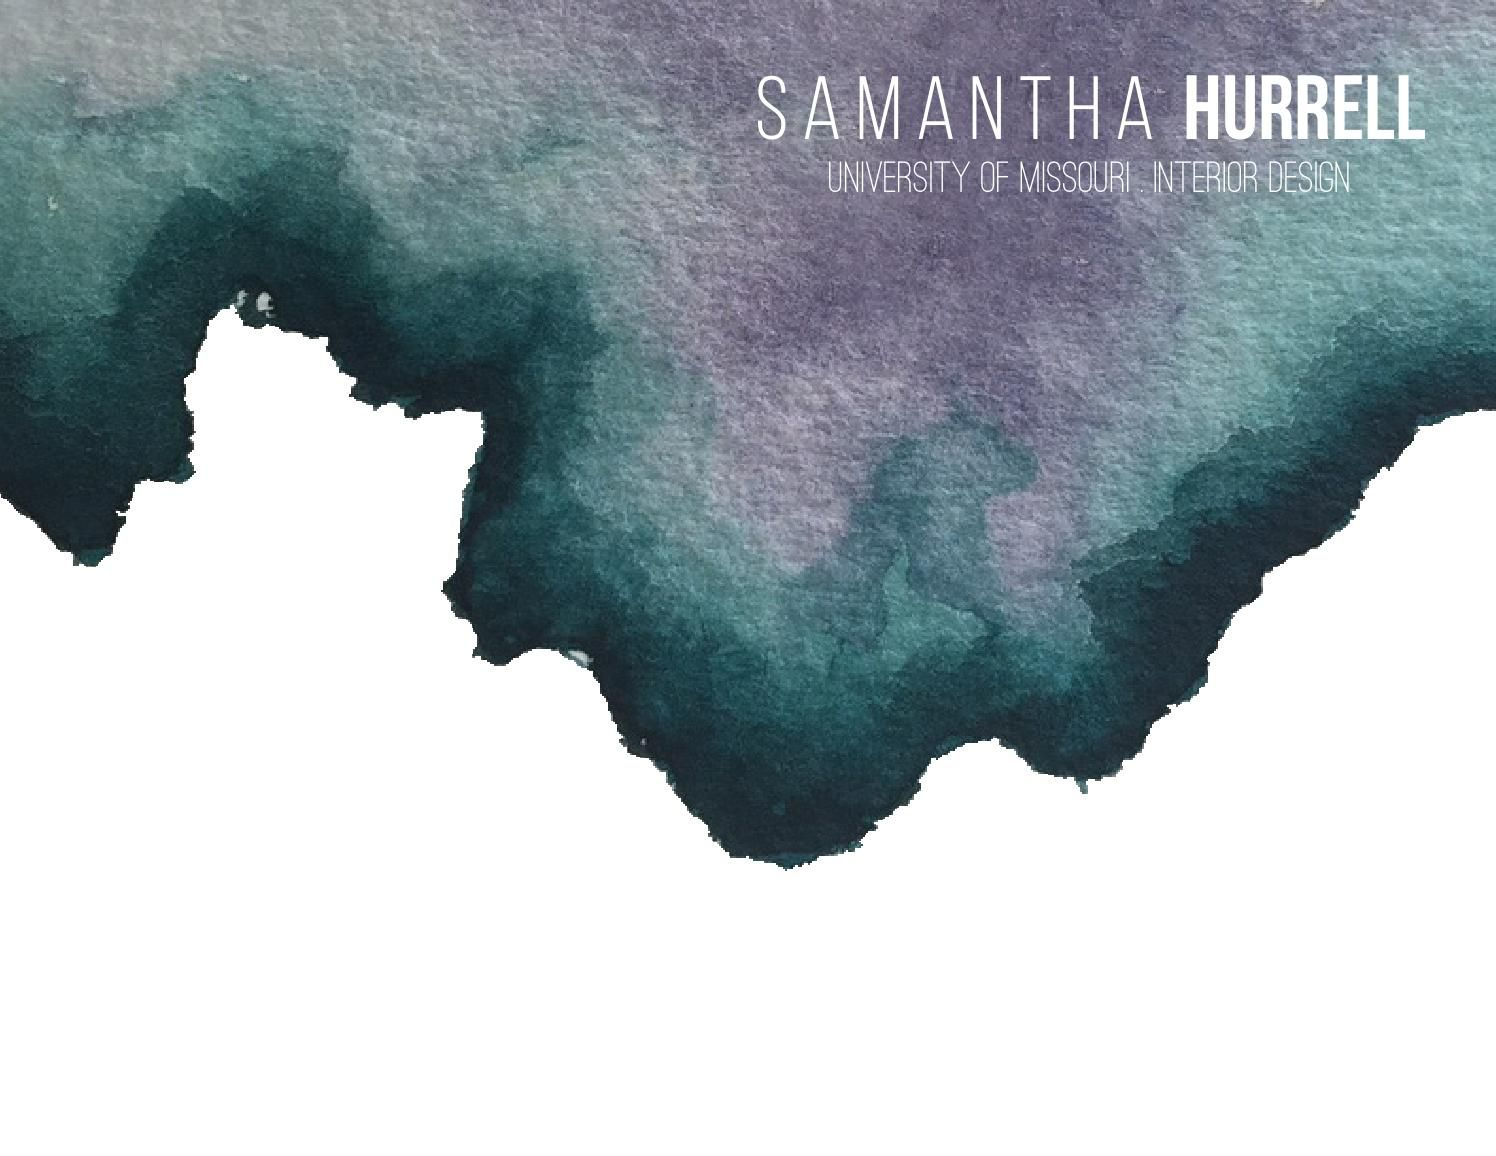 Samantha Hurrell 2015 Interior Design Portfolio Print Collateral